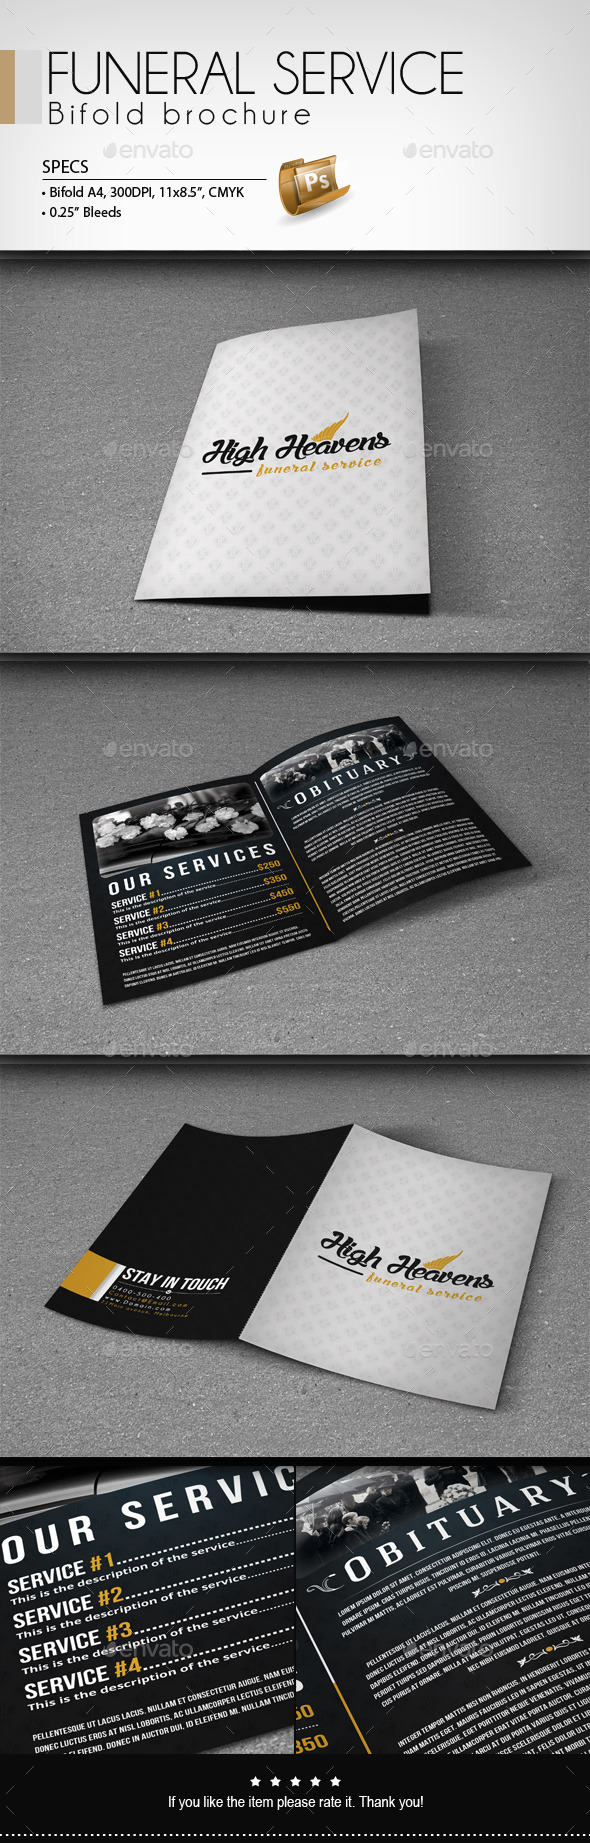 GraphicRiver Funeral Service Bifold Brochure 8887121